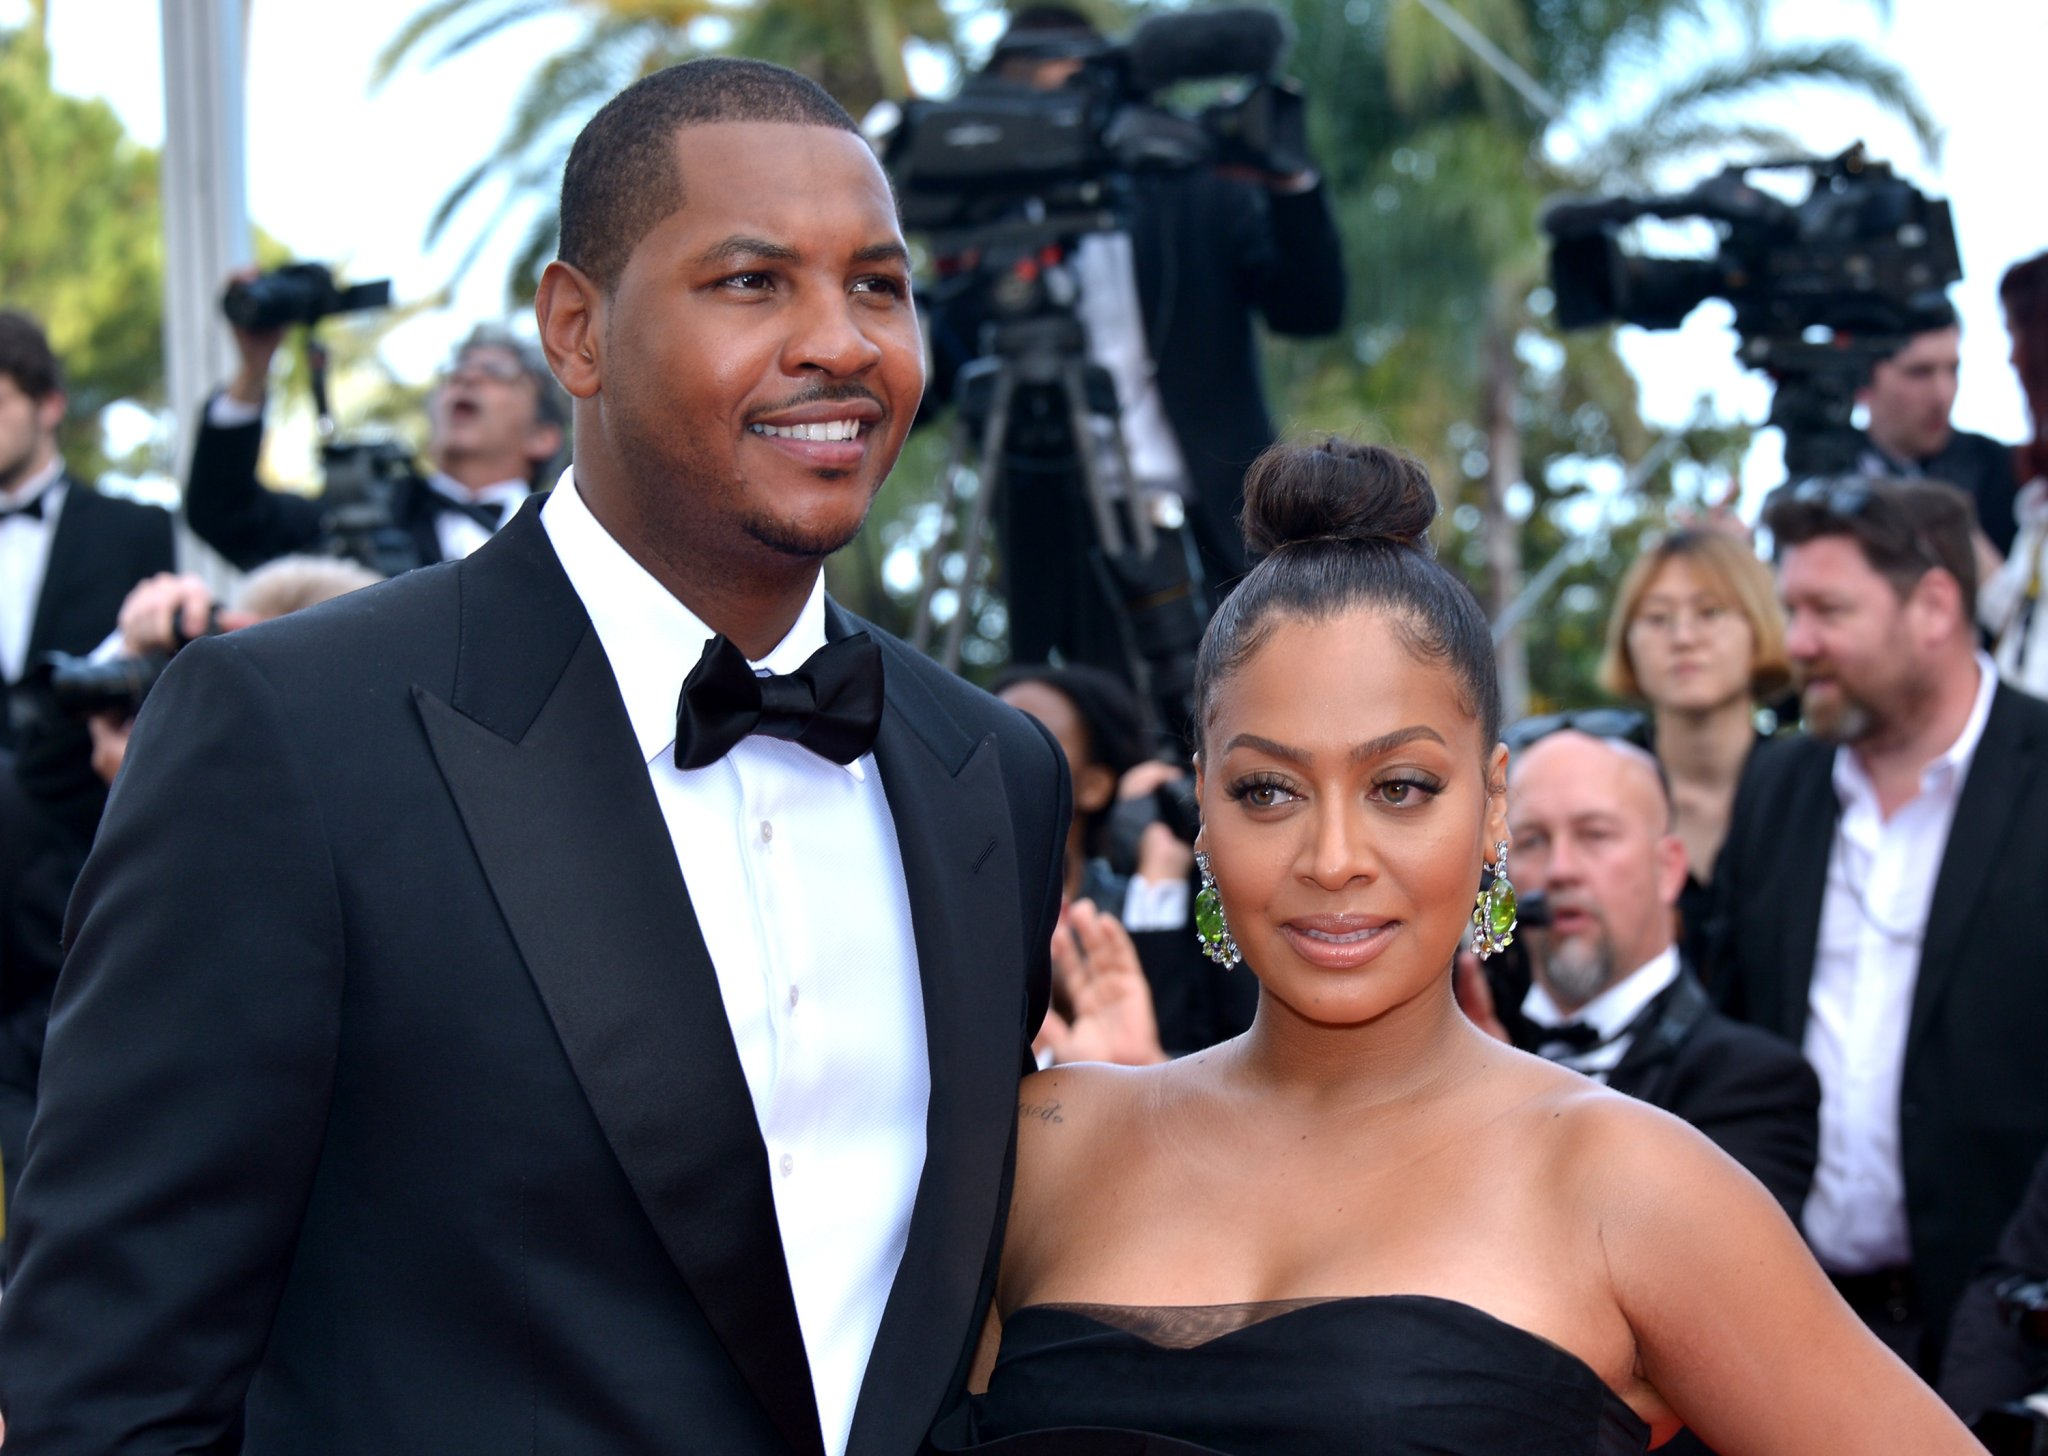 Lala had two pretty good reasons for divorcing Carmelo Anthony - cover